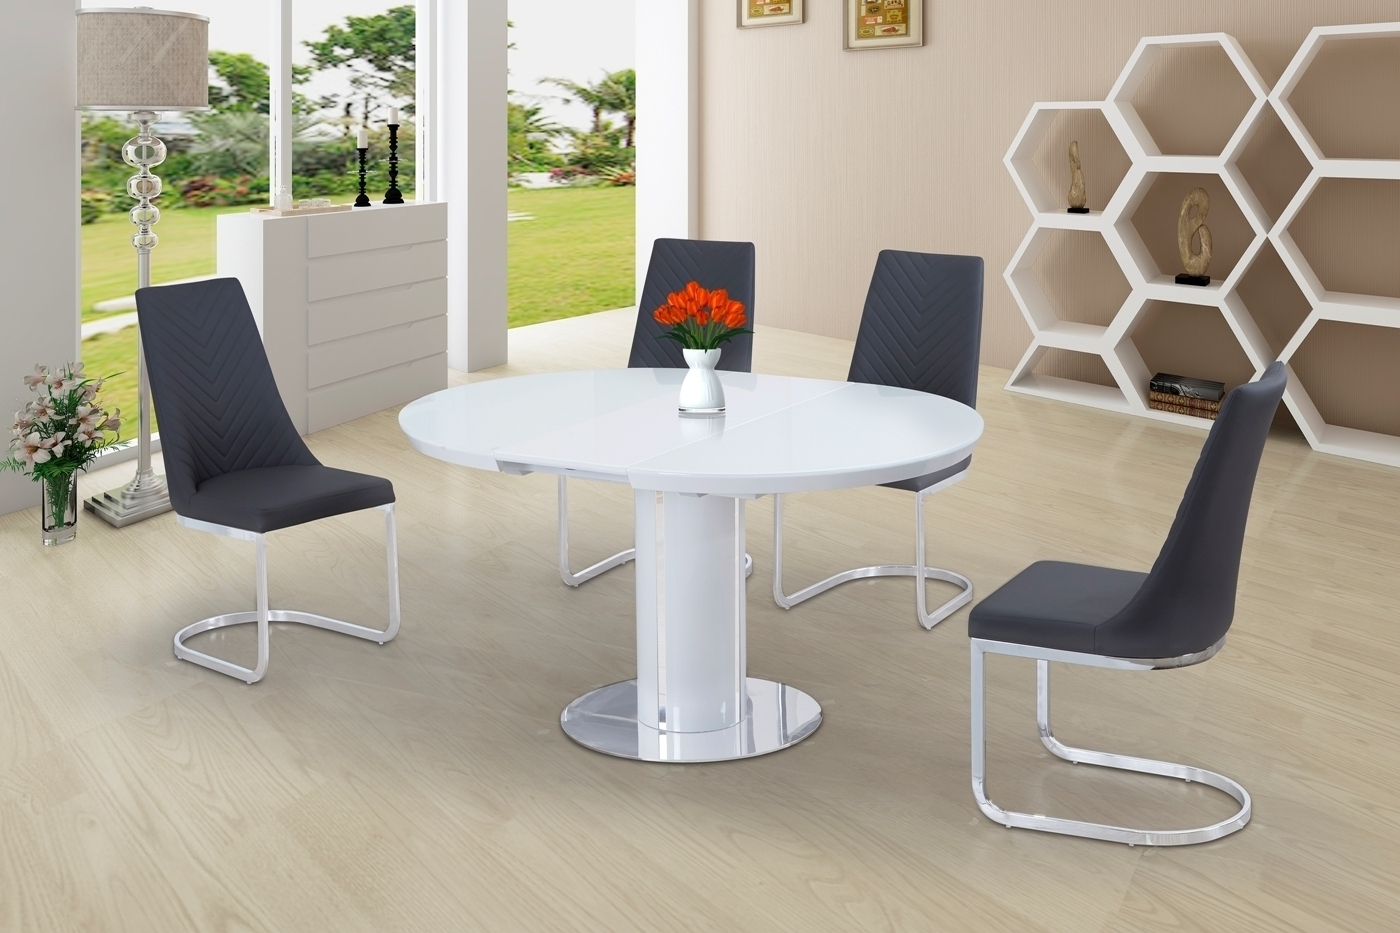 2018 White High Gloss Dining Tables 6 Chairs throughout Round White Glass High Gloss Dining Table And 6 Grey Chairs